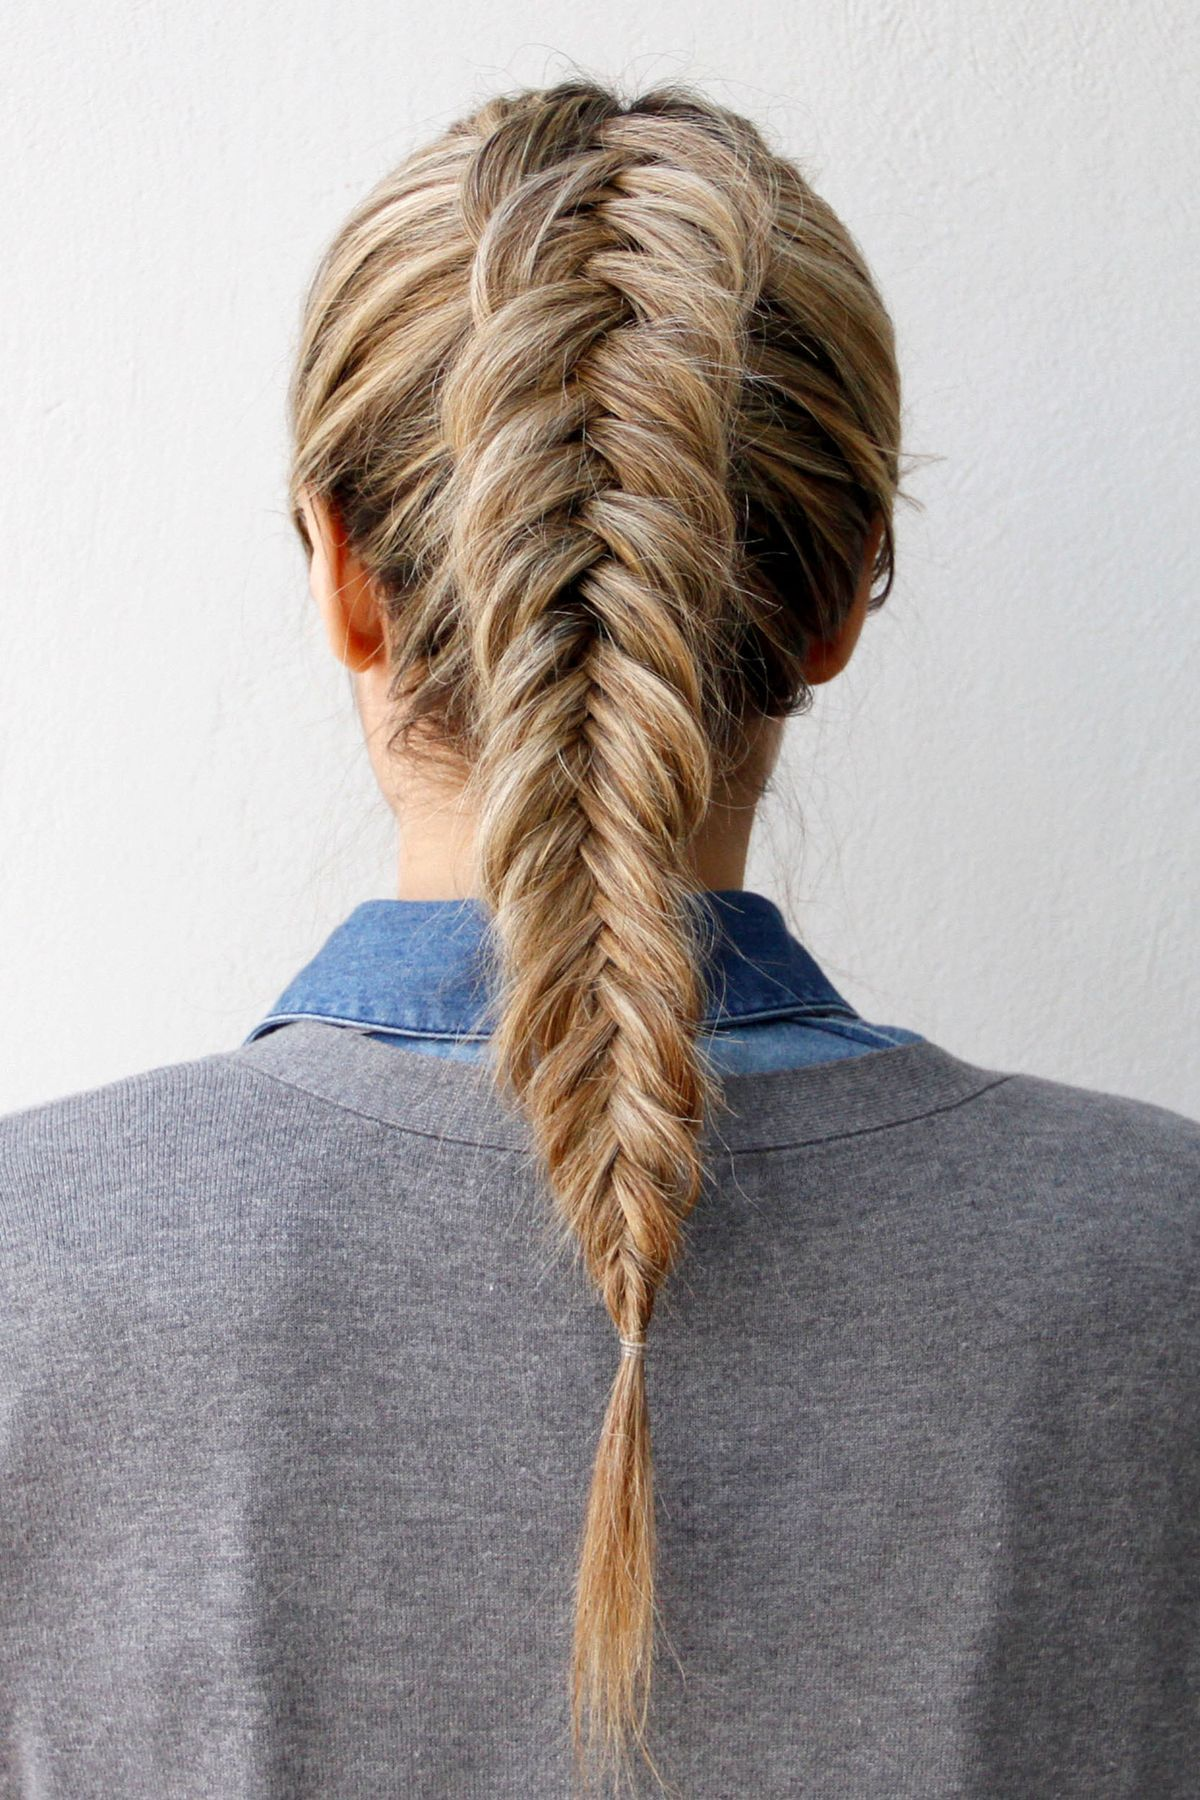 How to get an inverted fishtail braid thatus sure to impress